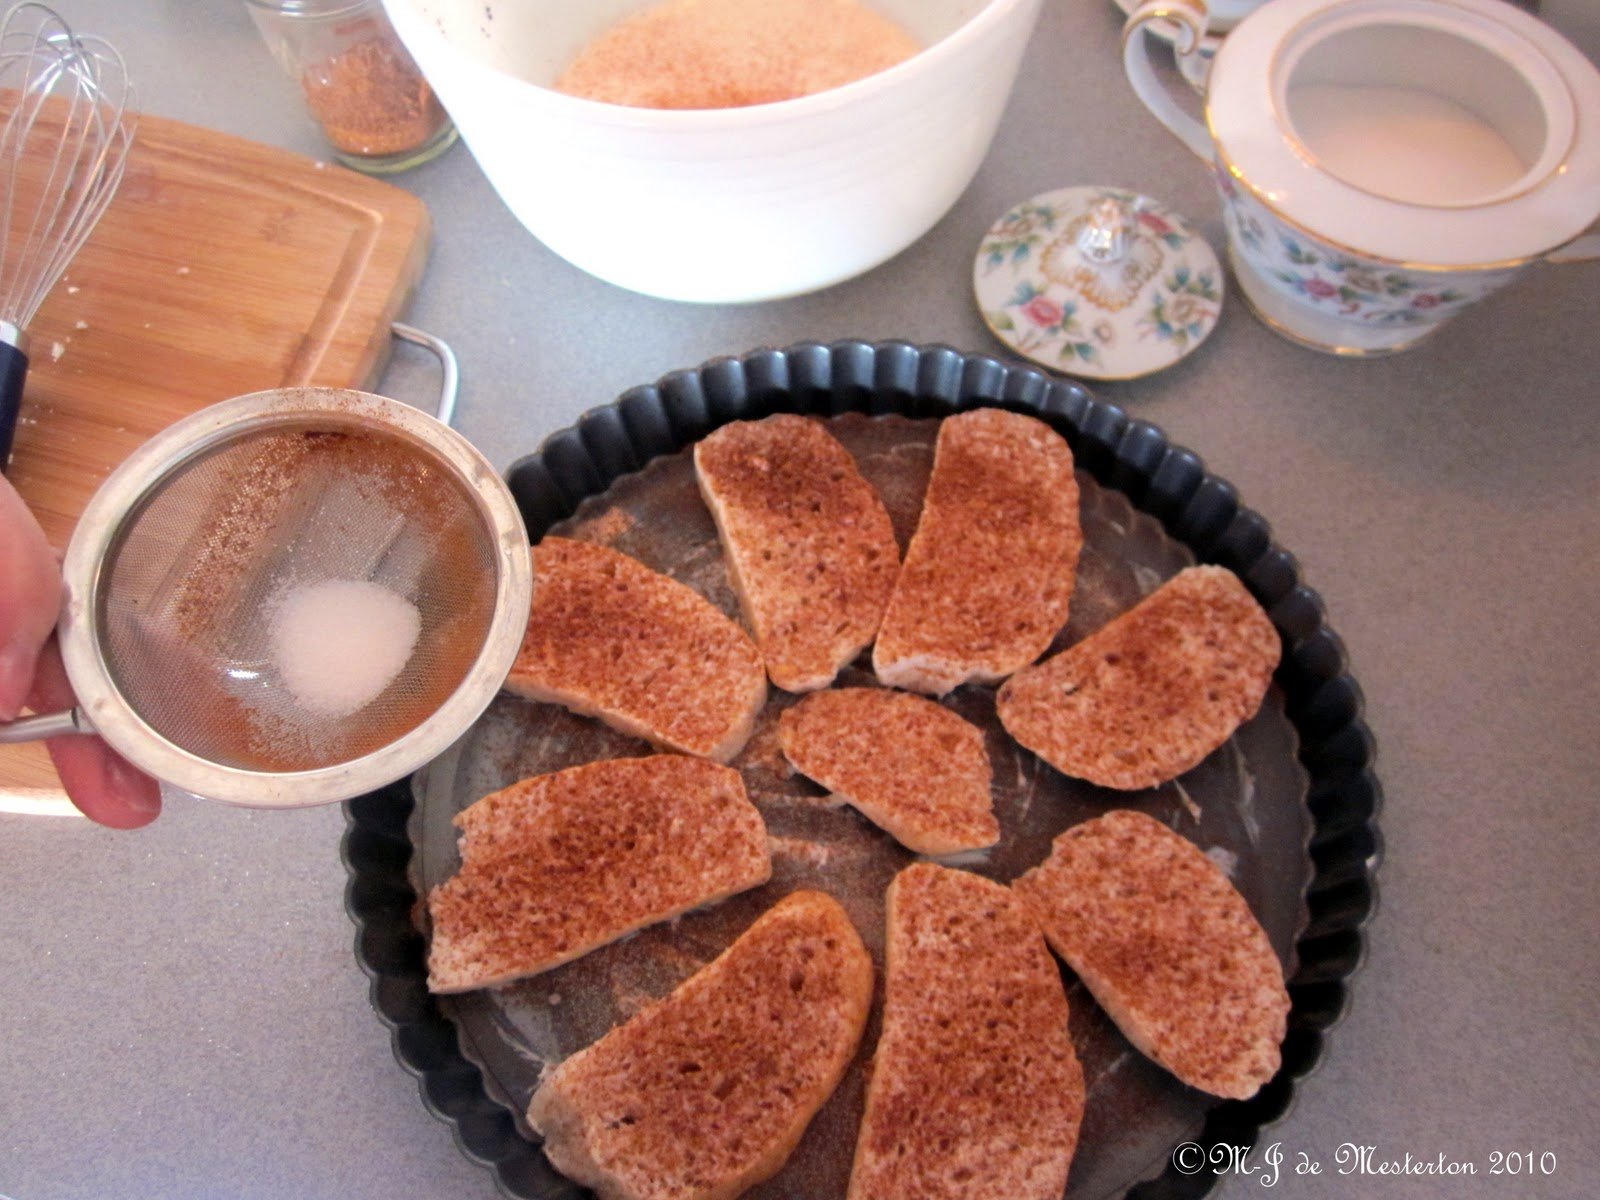 The method and ingredients for making baked cinnamon toast are simple